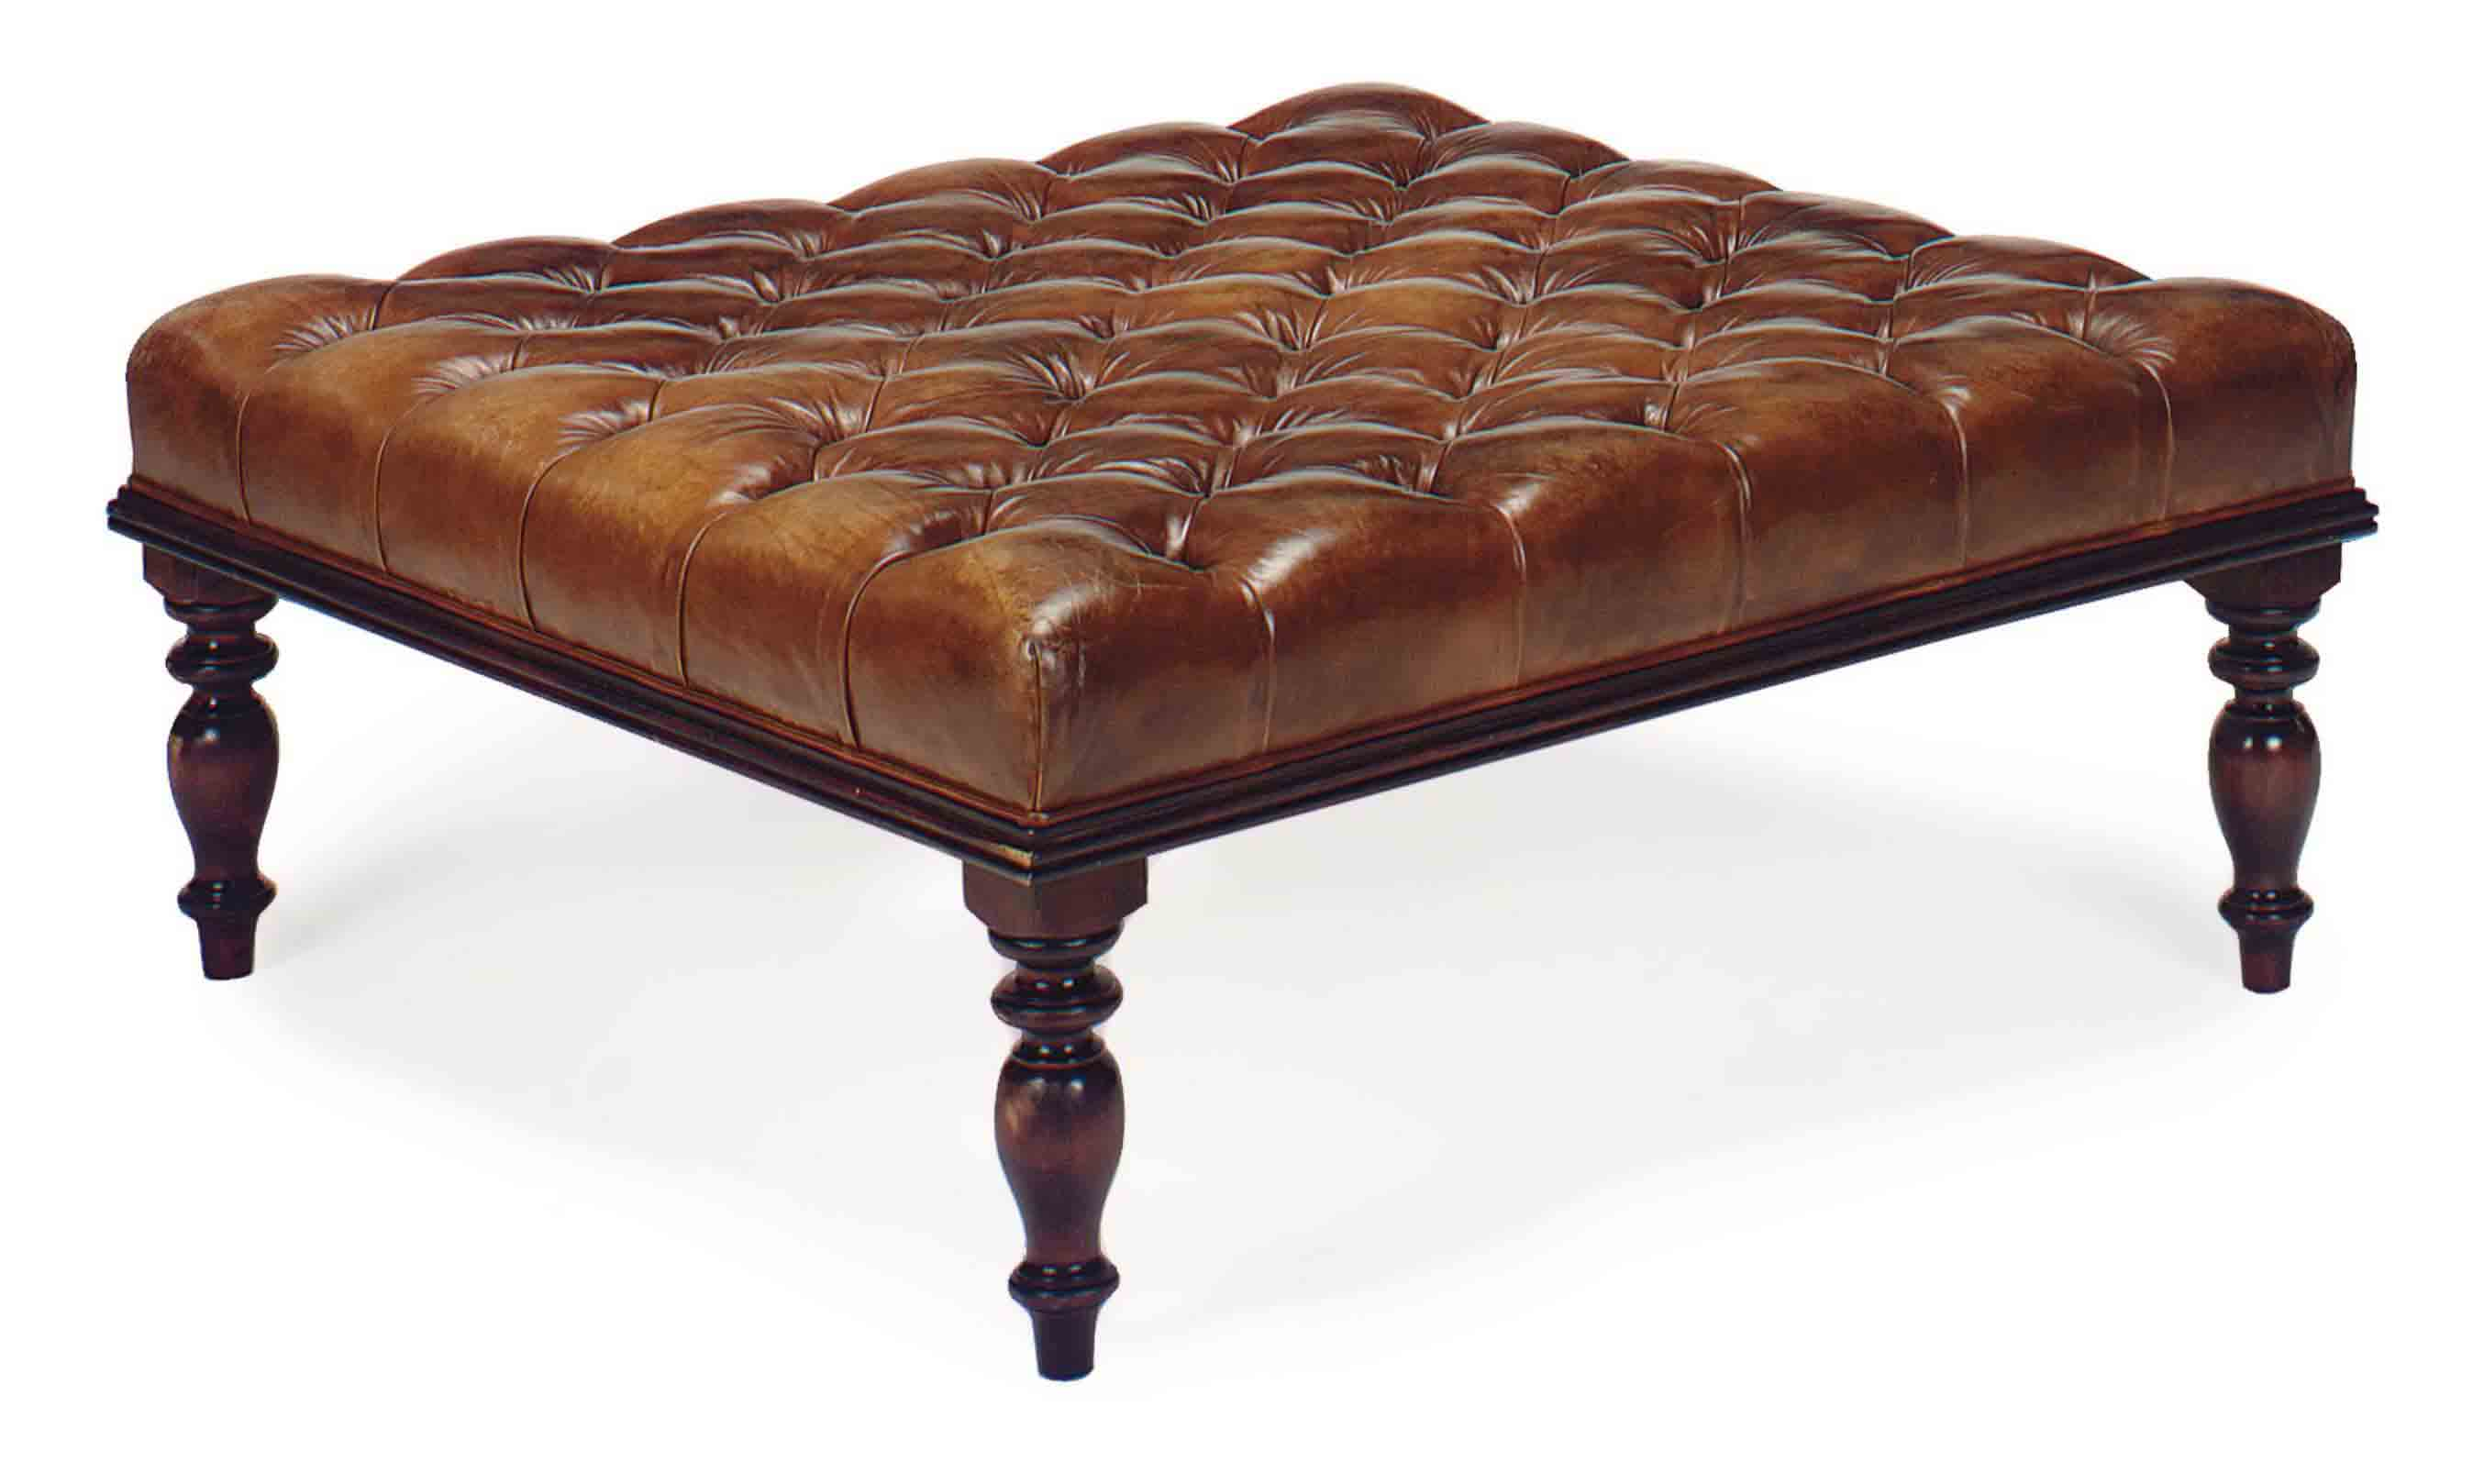 Sensational An Oversized Mahogany And Button Tufted Tan Leather Ottoman Caraccident5 Cool Chair Designs And Ideas Caraccident5Info